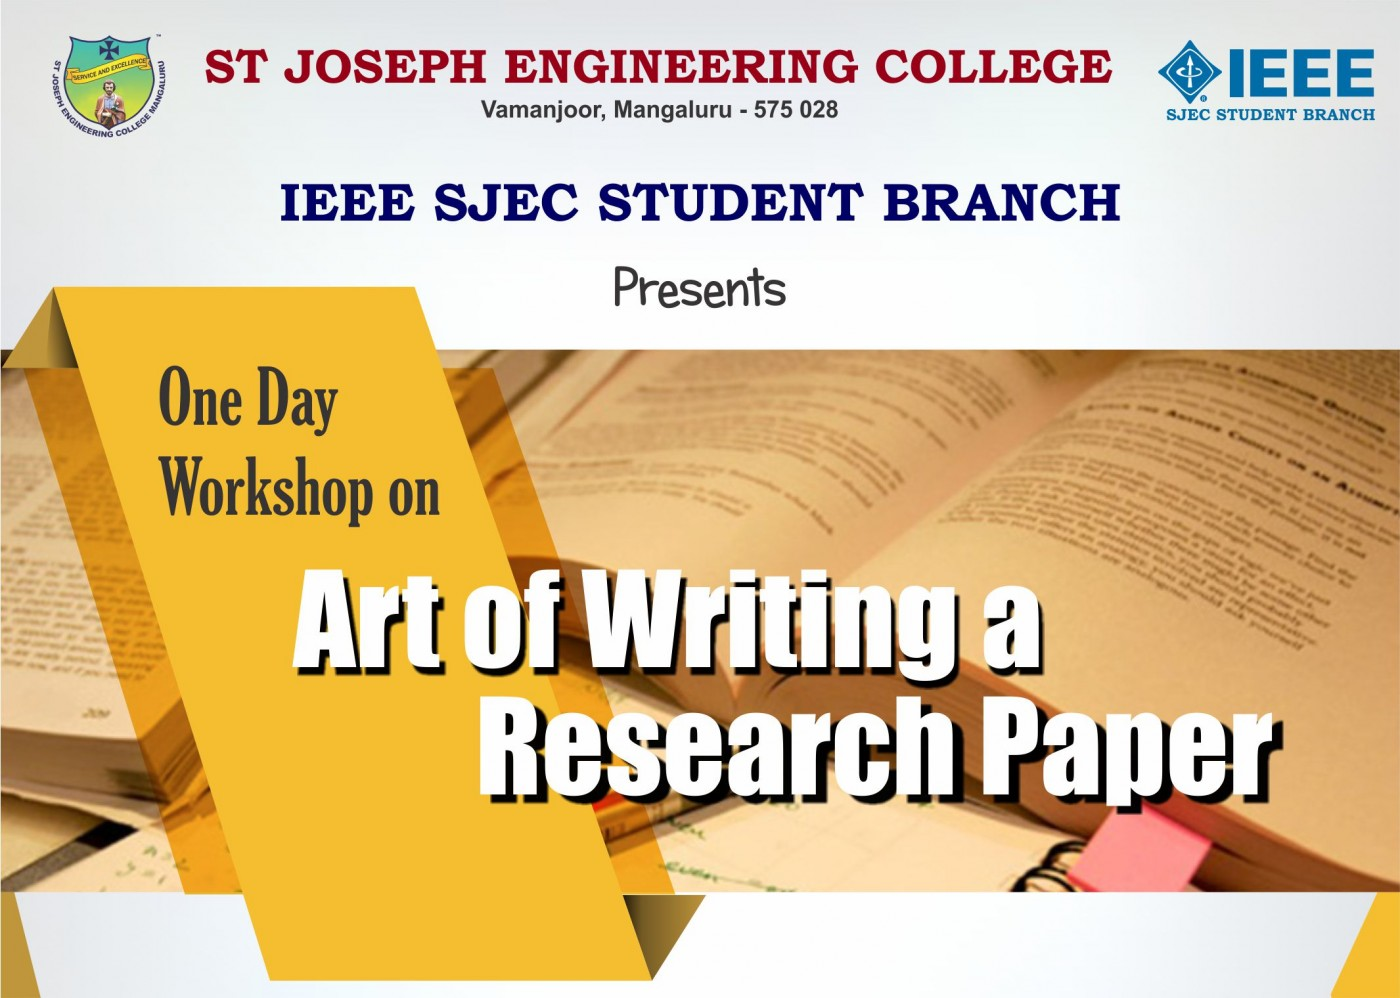 016 Writting Research Paper Workshop Dreaded A Writing Proposal In Day Steps To Introduction 1400